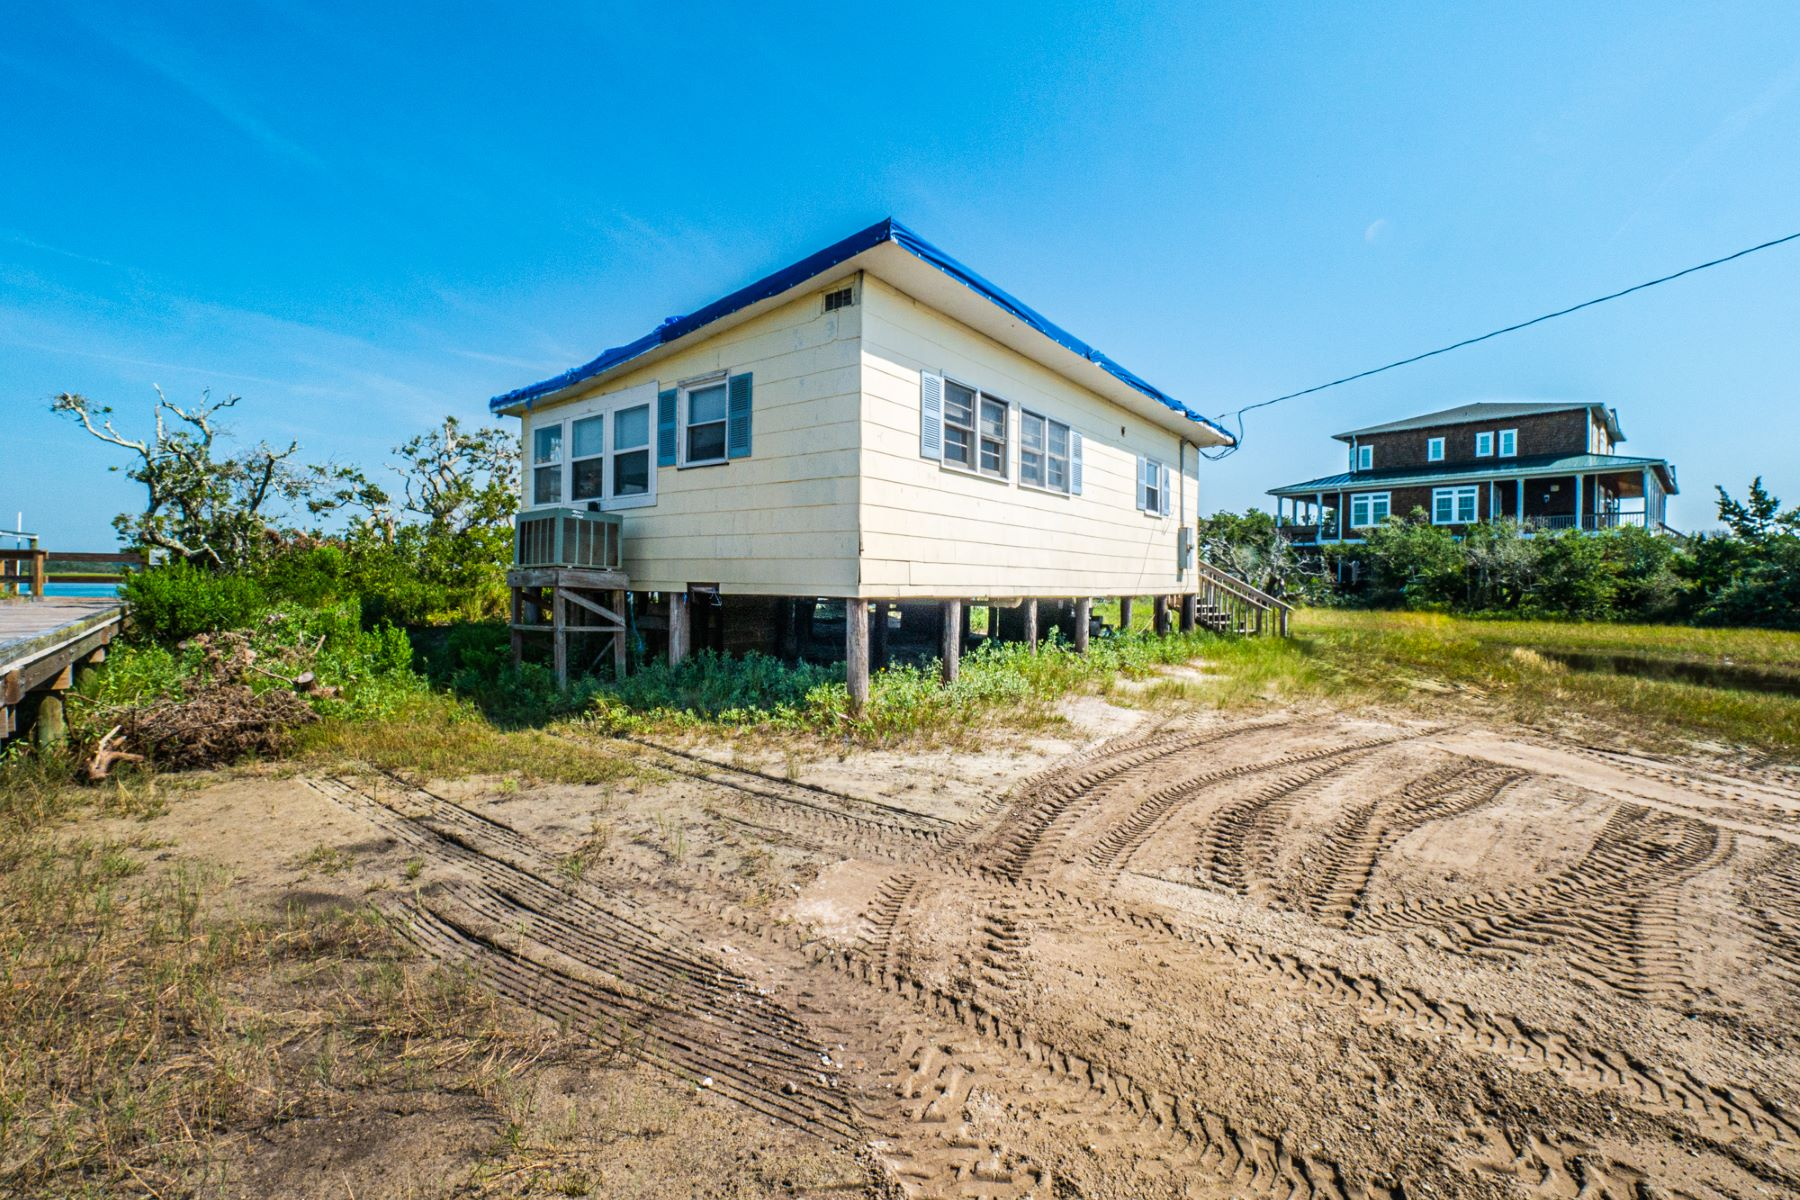 Single Family Homes for Sale at Vintage Soundfront Cottage on Topsail Island 1140 N Anderson Blvd Topsail Beach, North Carolina 28445 United States